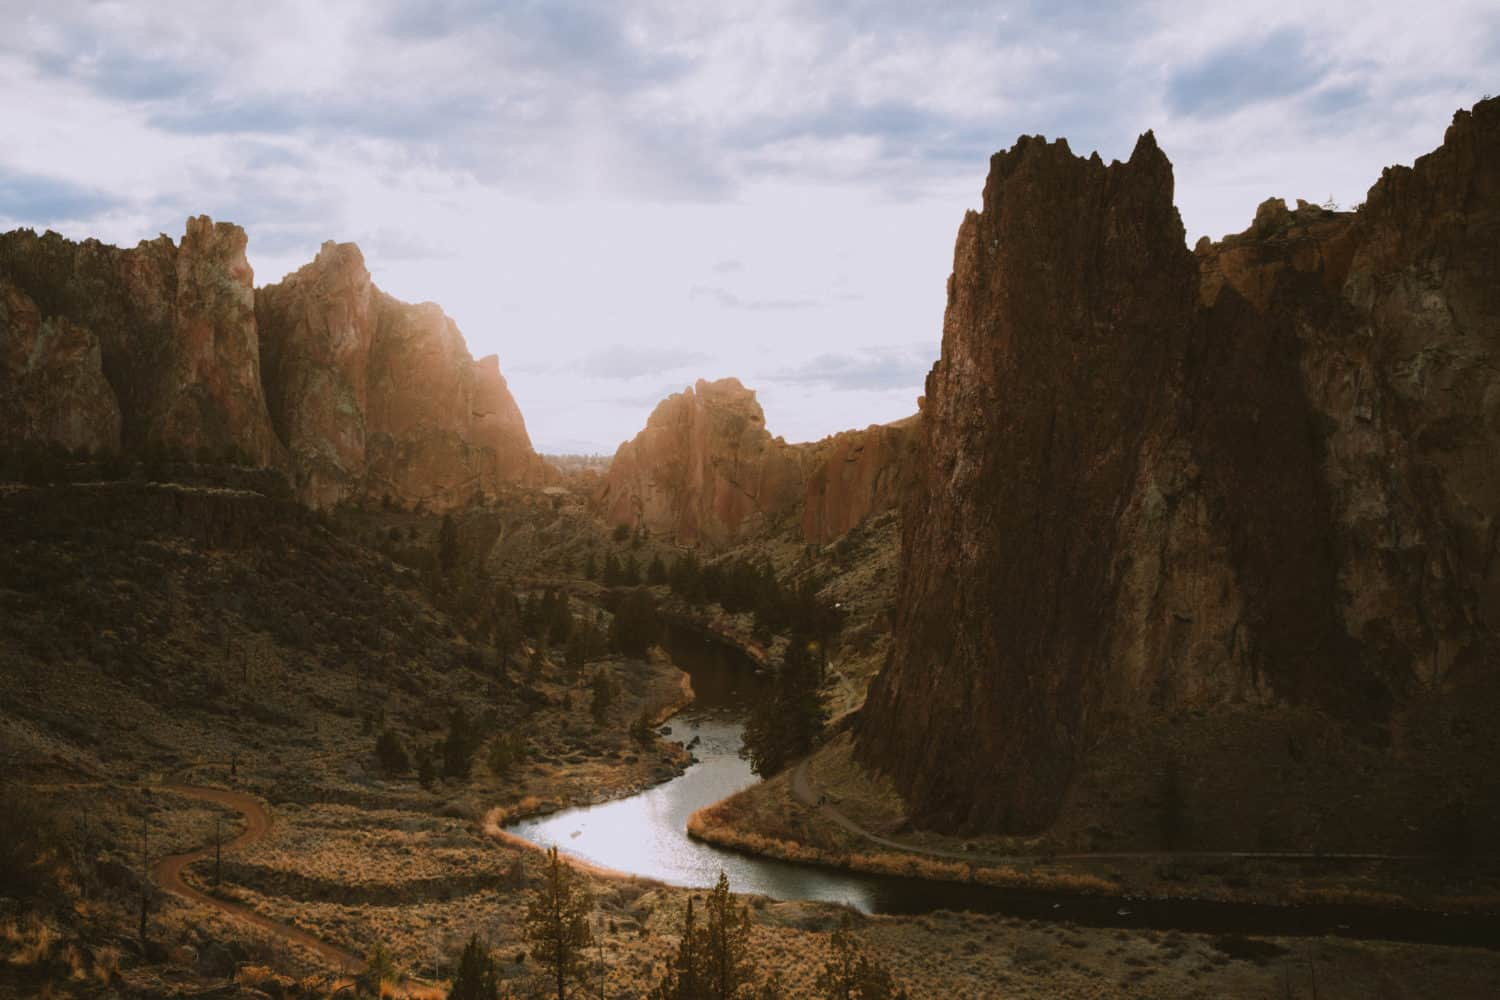 Bend Oregon Photography Locations - Smith Rock State Park